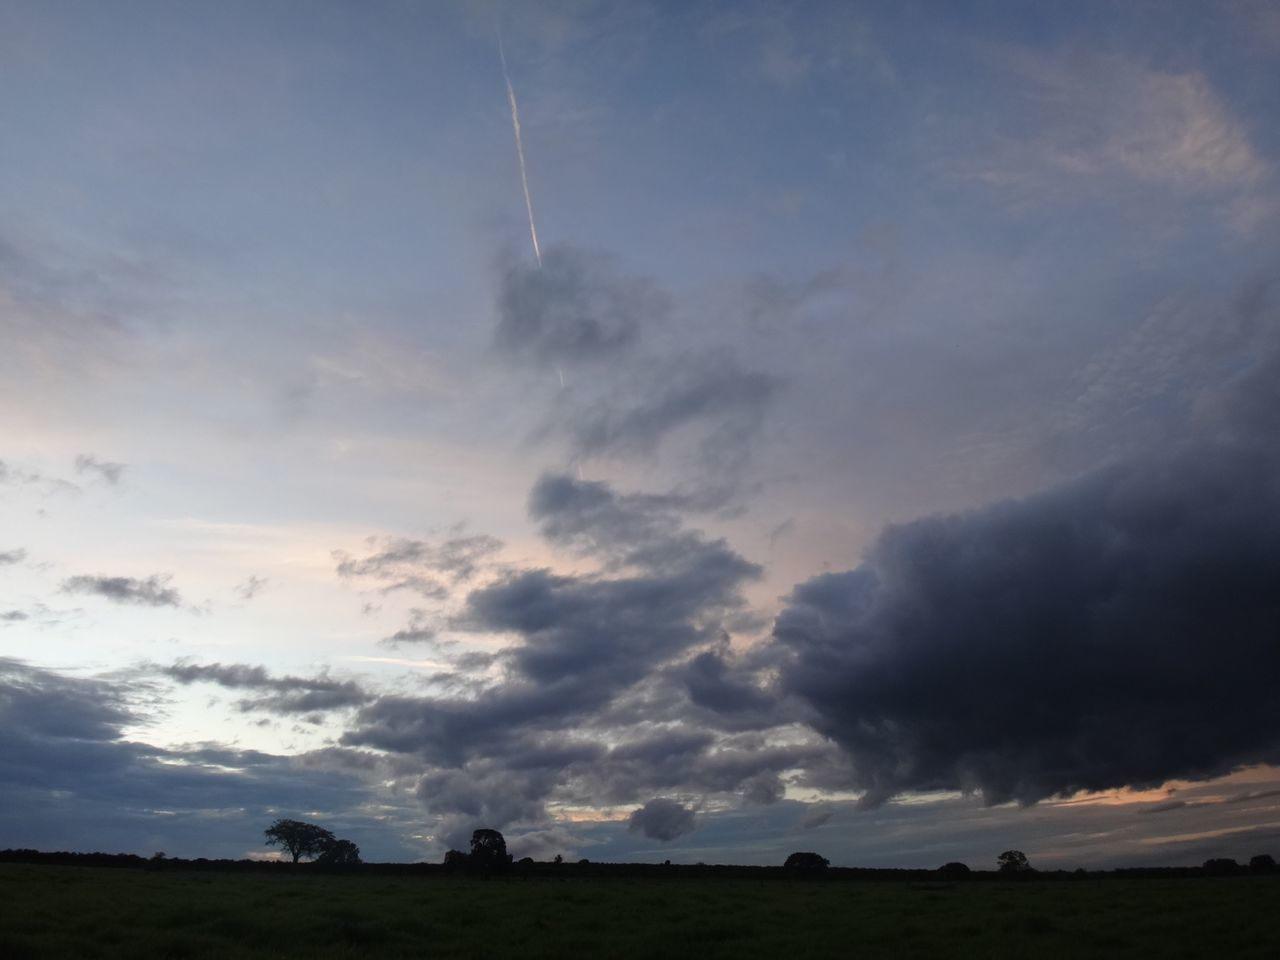 sky, cloud - sky, nature, landscape, scenics, tranquil scene, tranquility, no people, beauty in nature, vapor trail, sunset, outdoors, day, animal themes